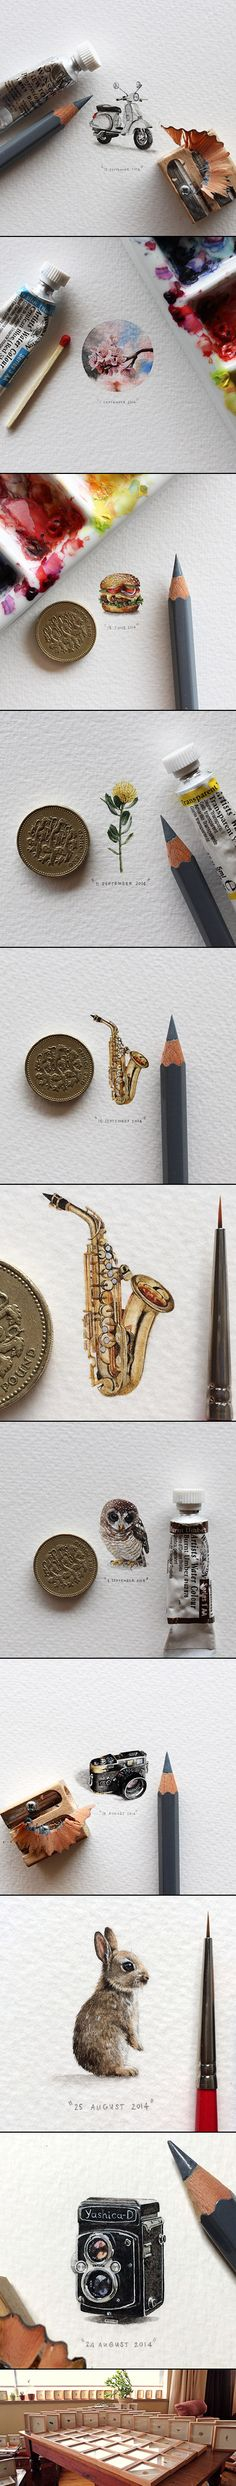 Postcards for Ants is an ongoing painting project by Cape Town artist Lorraine Loots